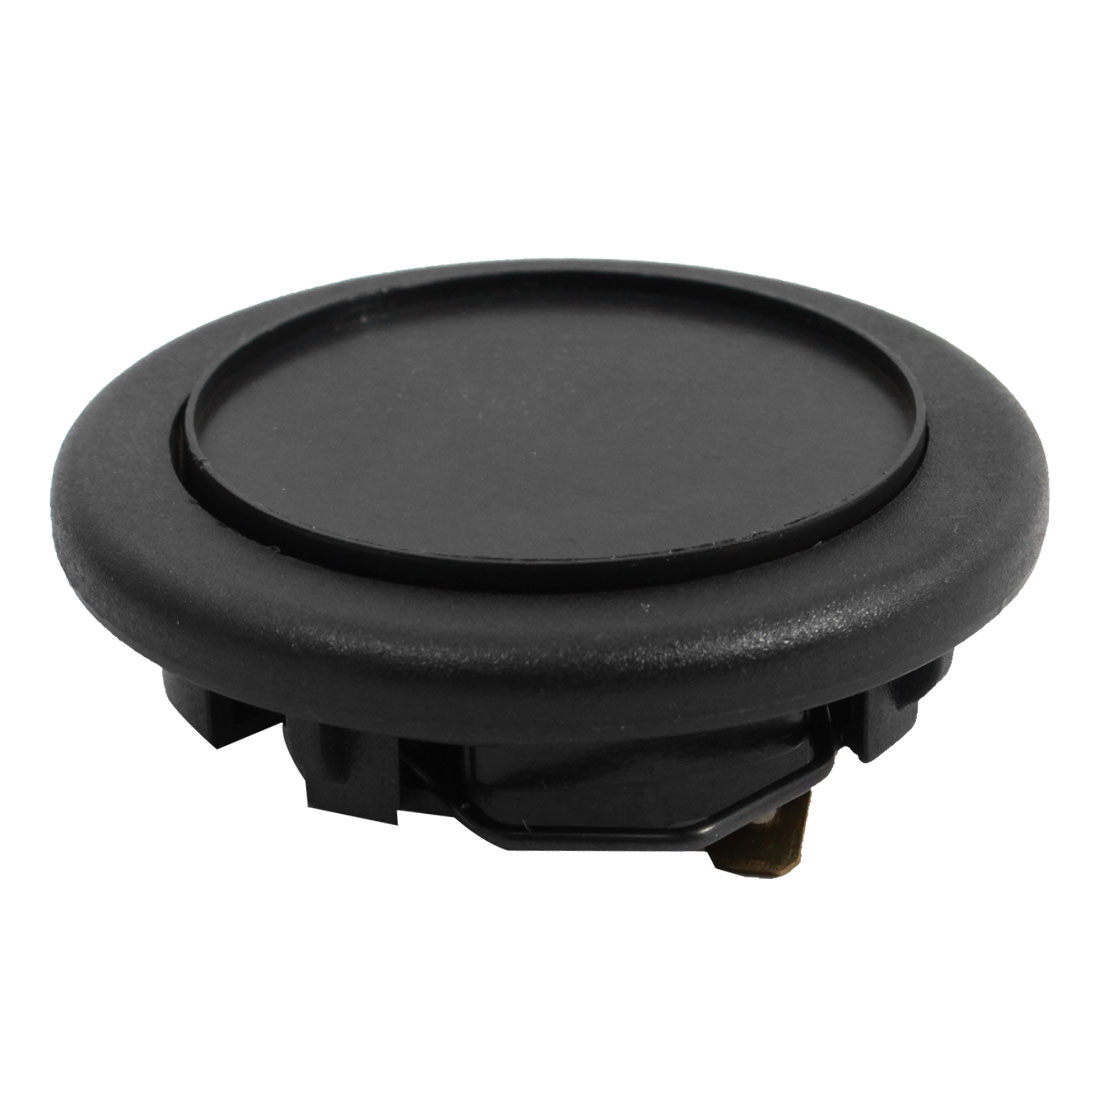 "Black Plastic 2.4"" Dia Universal Car Steering Wheels Horn Button Spare Part"